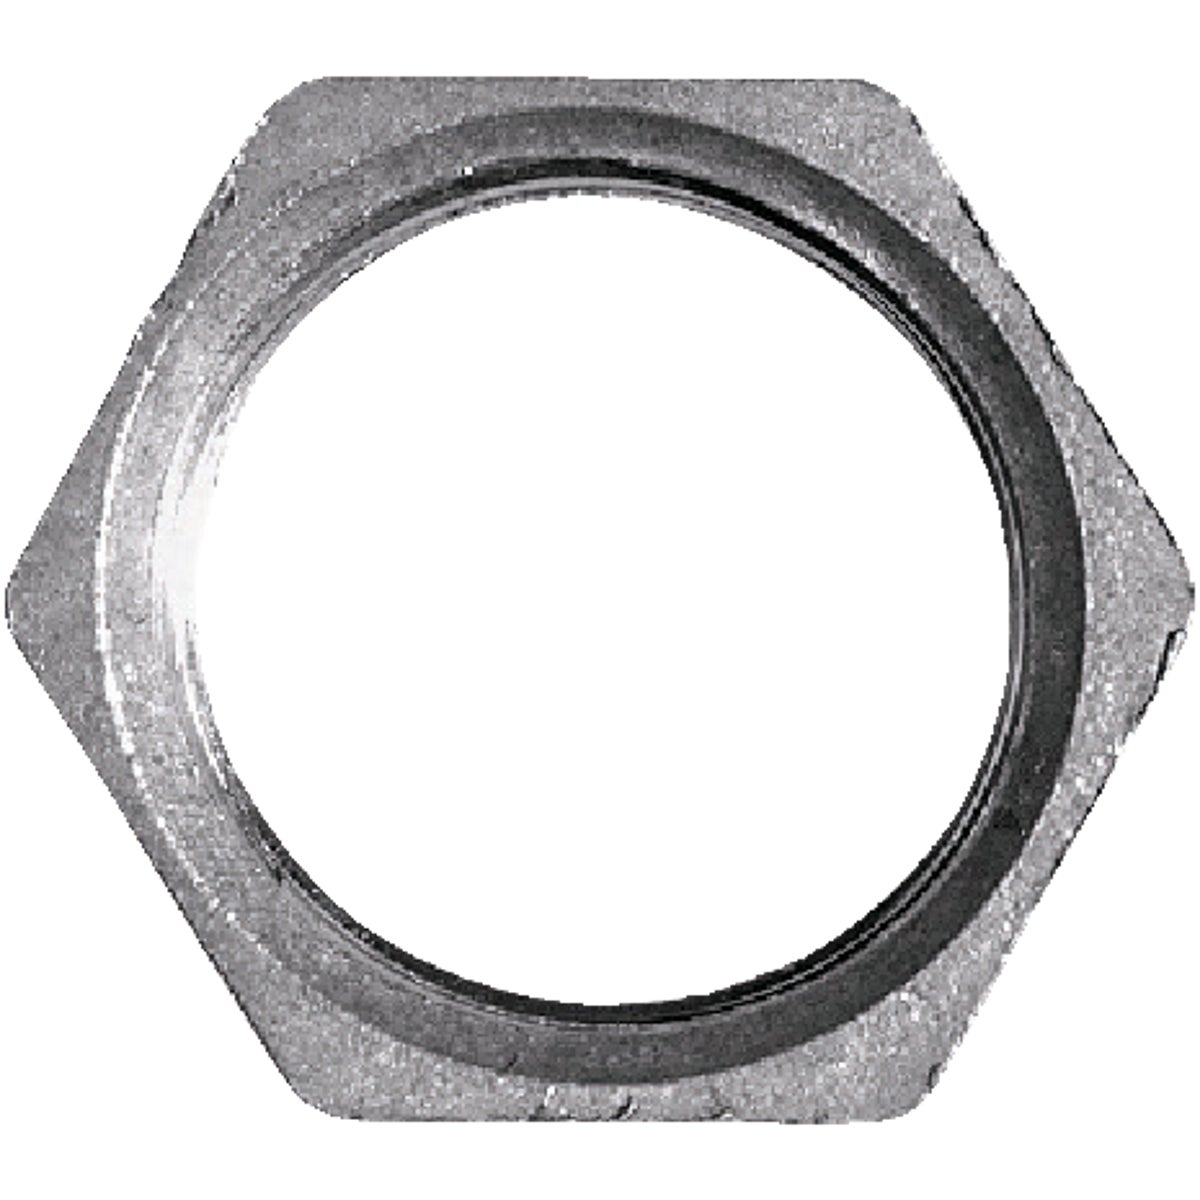 FAUCET LOCKNUT - 73106B by Danco Perfect Match